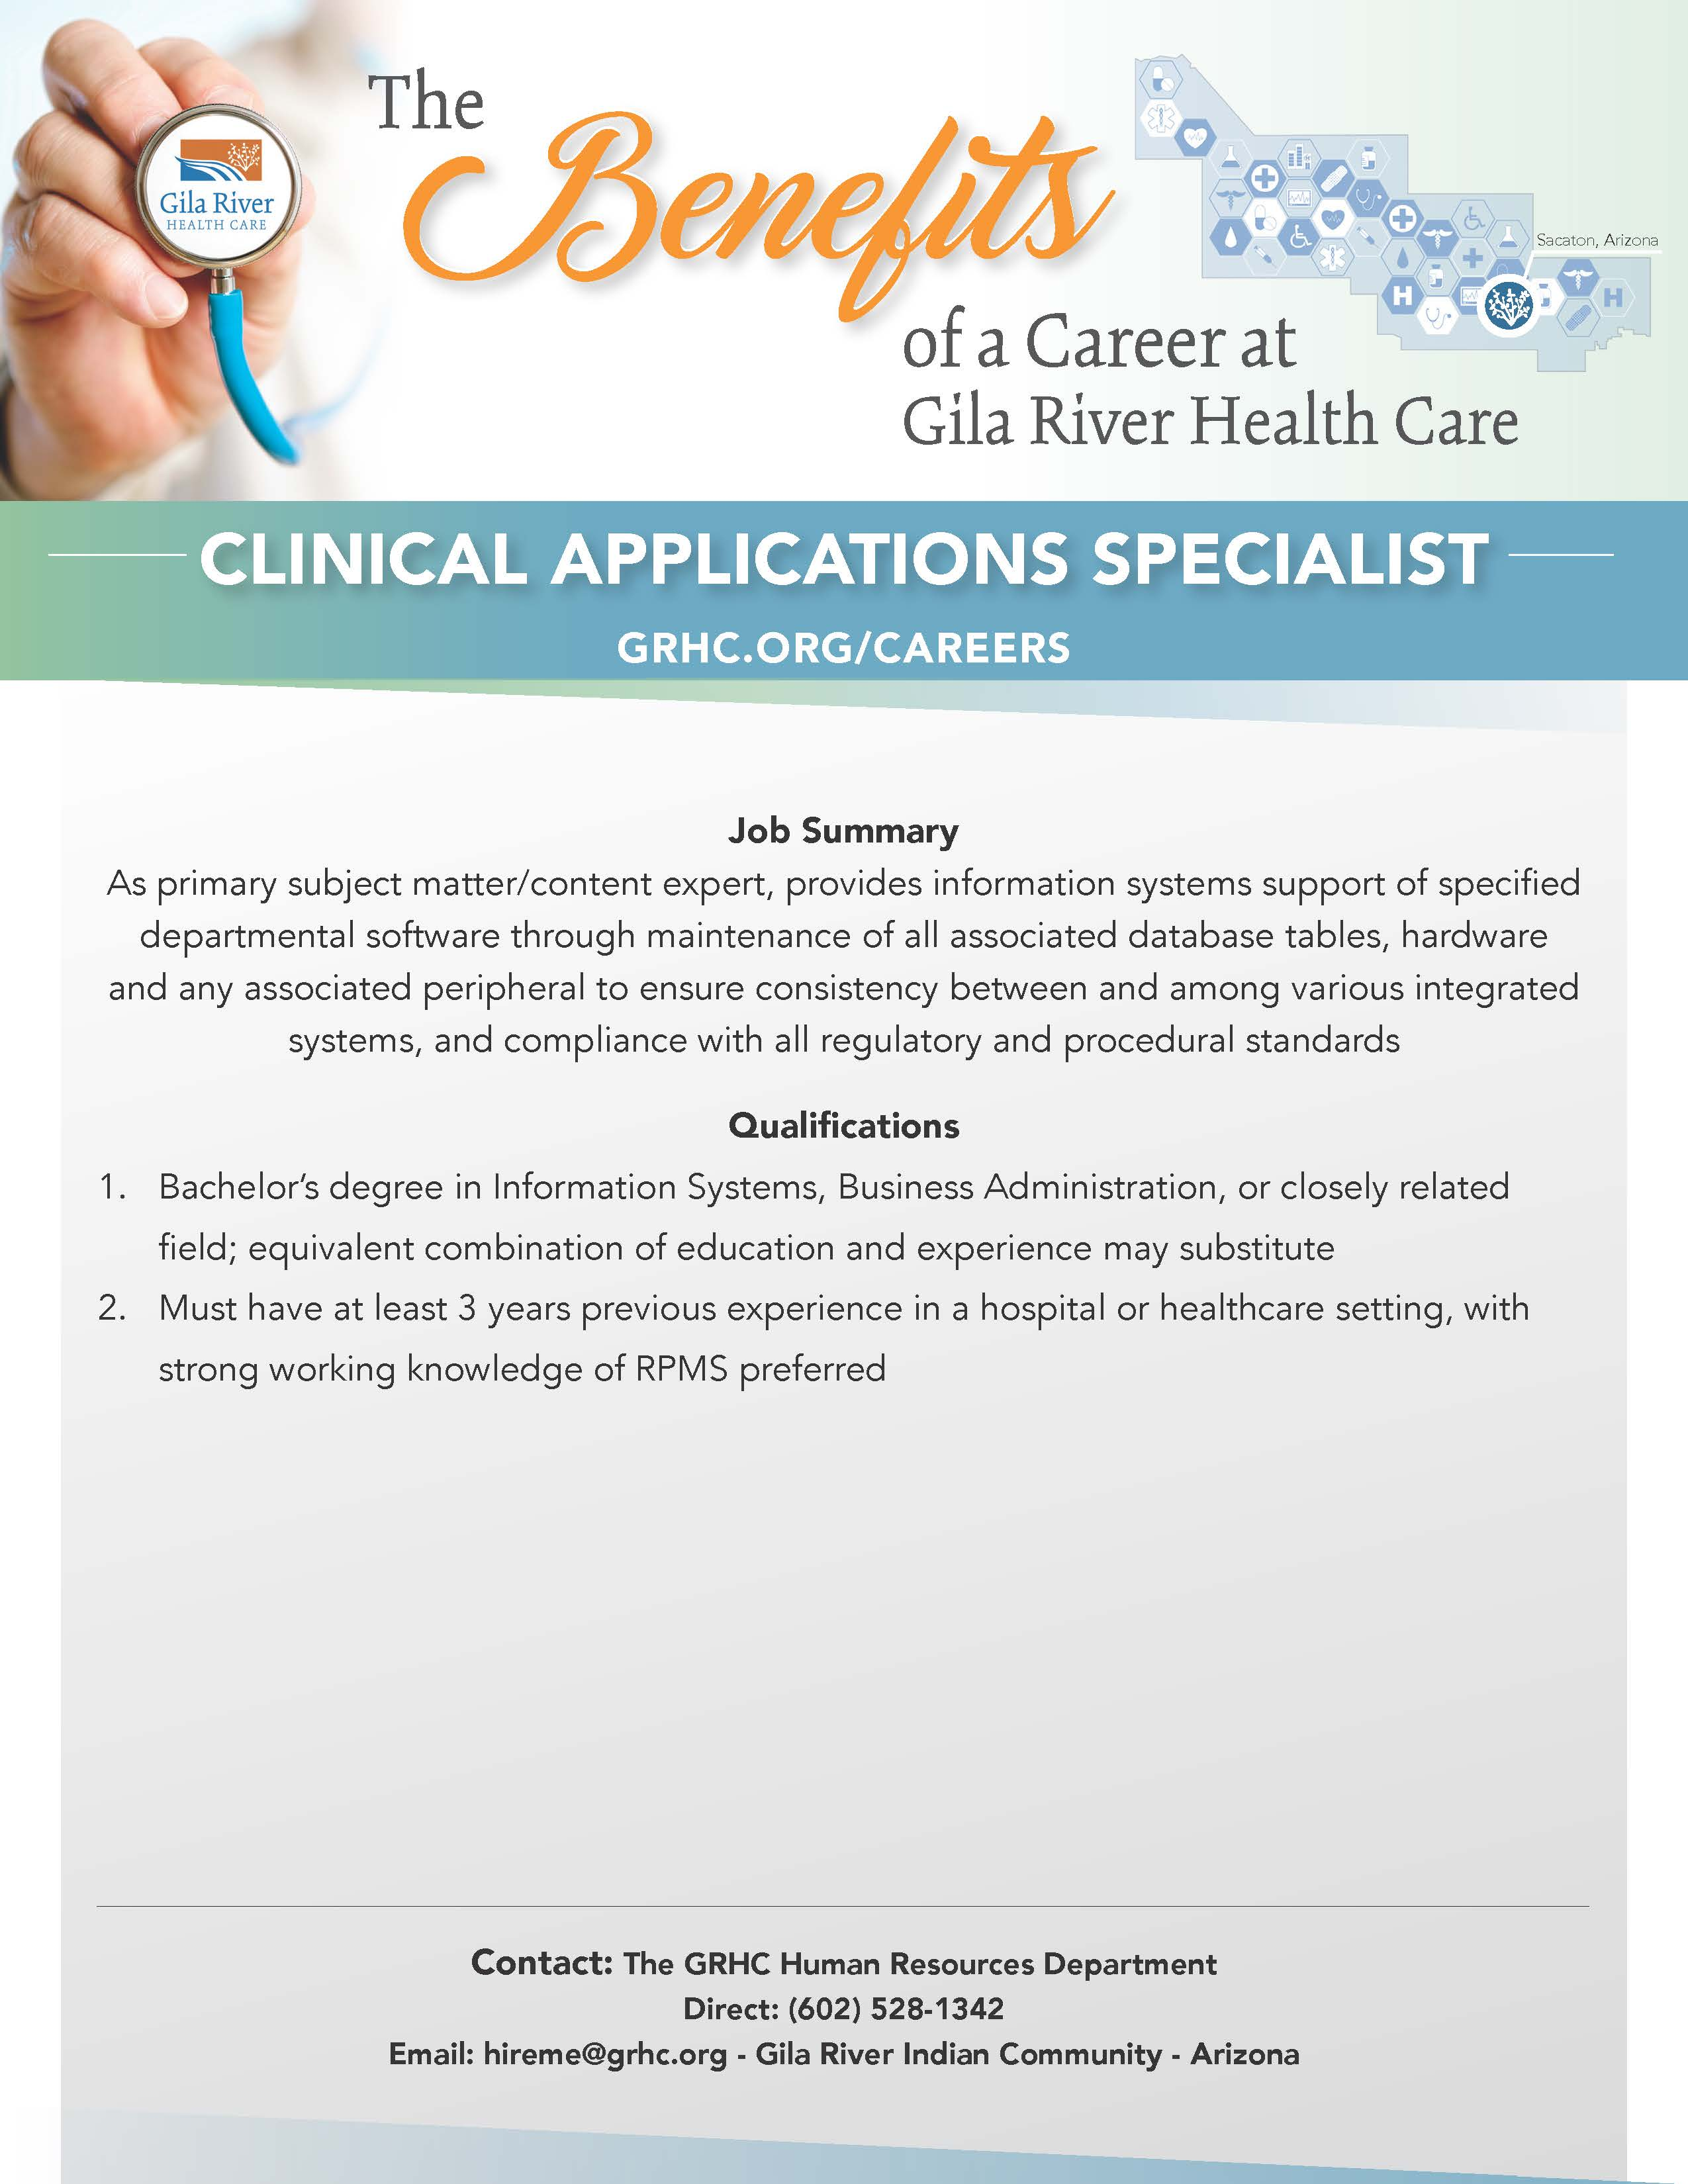 CLINICAL APPLICATIONS SPECIALIST